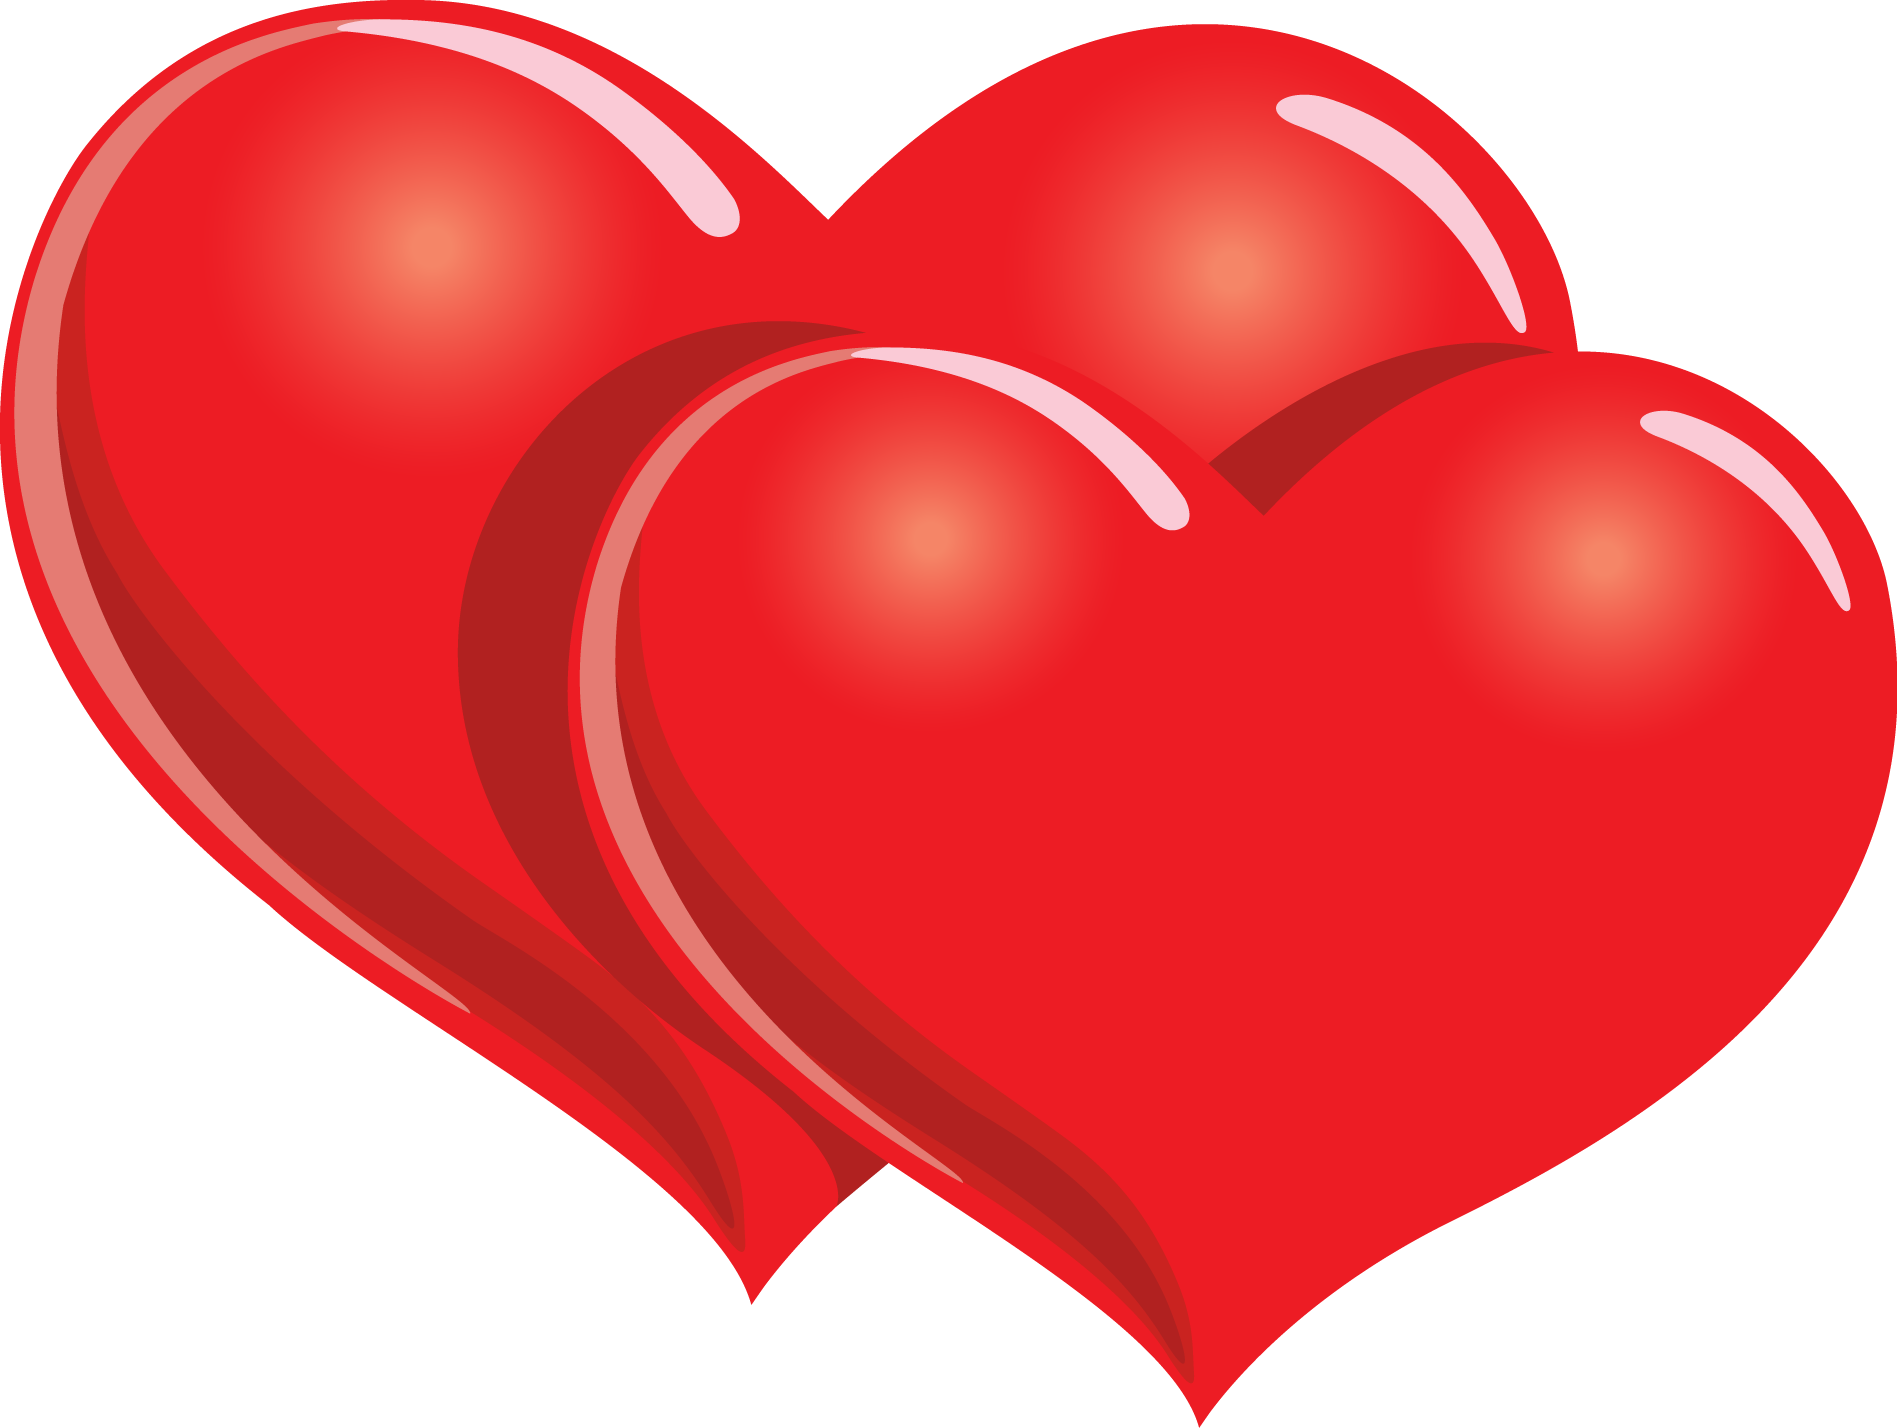 Other Wallpaper: Human Heart Clipart Wallpapers Mobile with High.